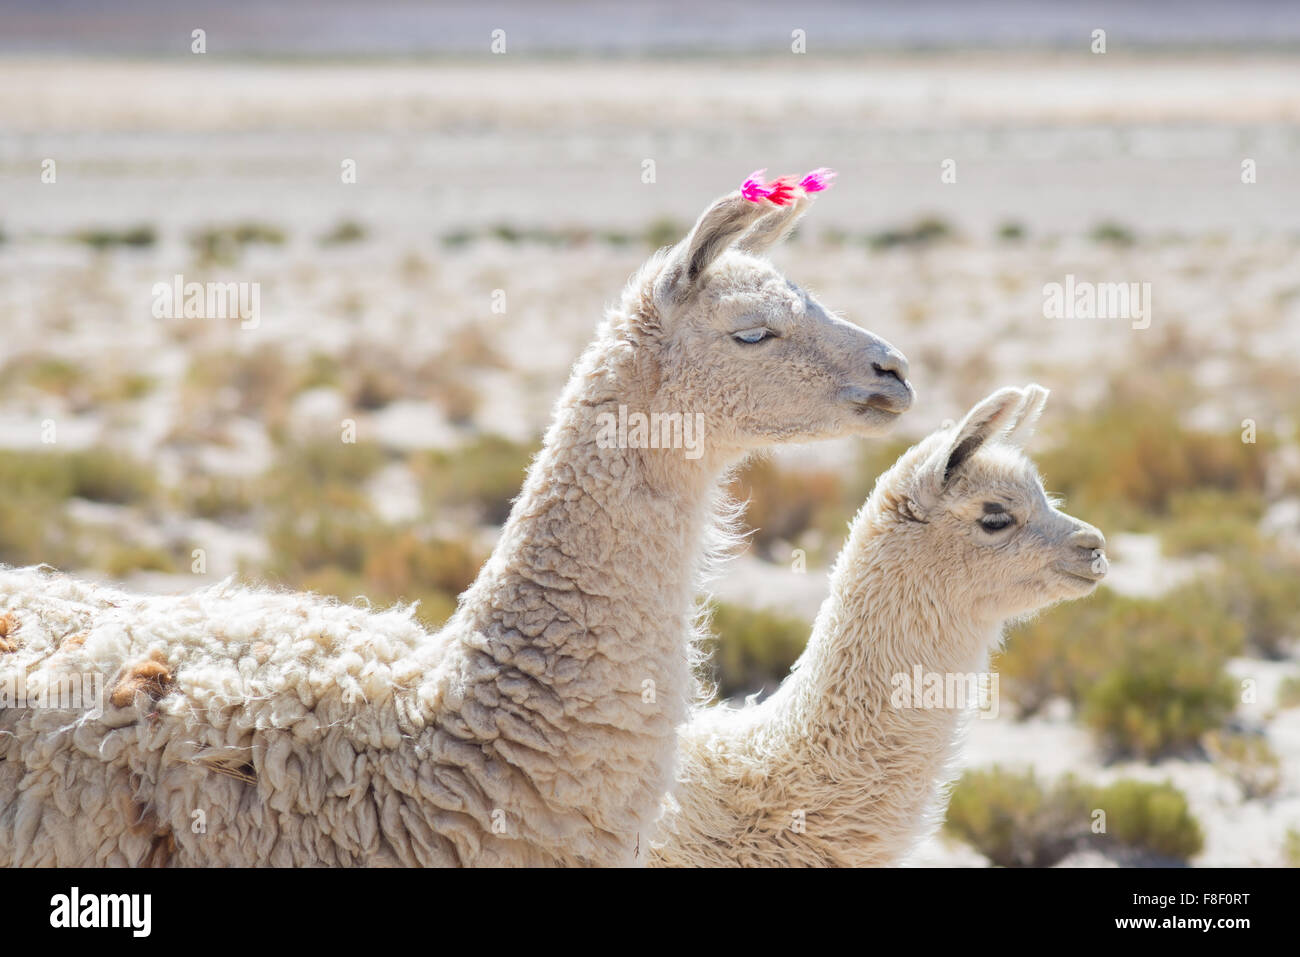 Couple of llamas on the Andean highland in Bolivia. Adult with baby animal. Side telephoto view. - Stock Image